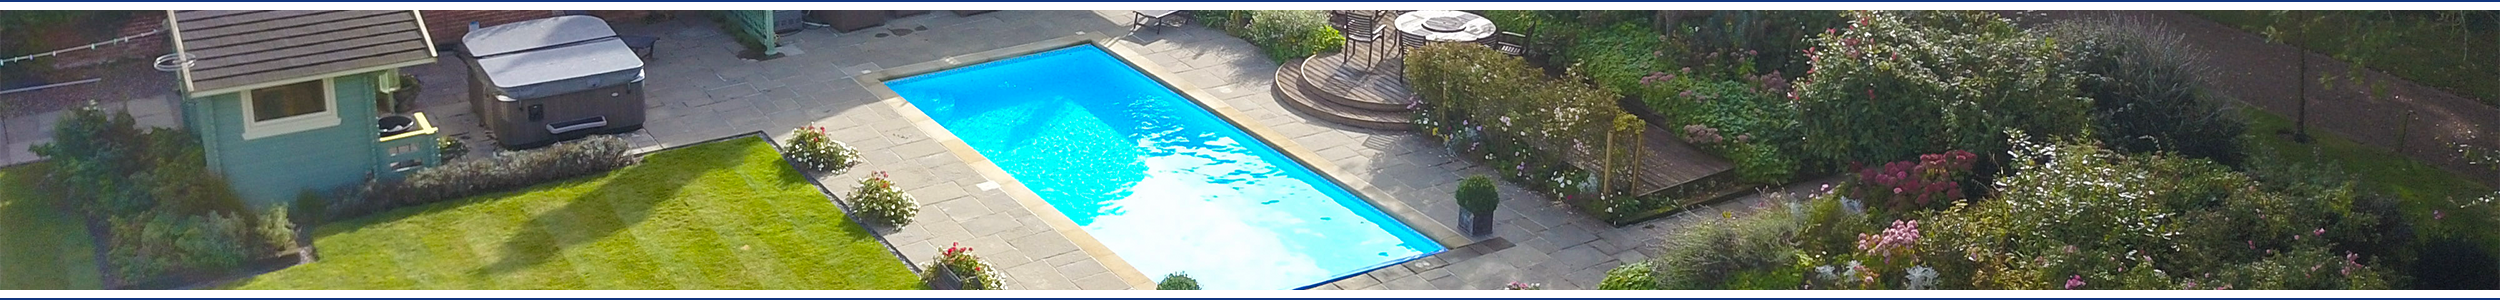 Services banner image // Wensum Pools Ltd Services